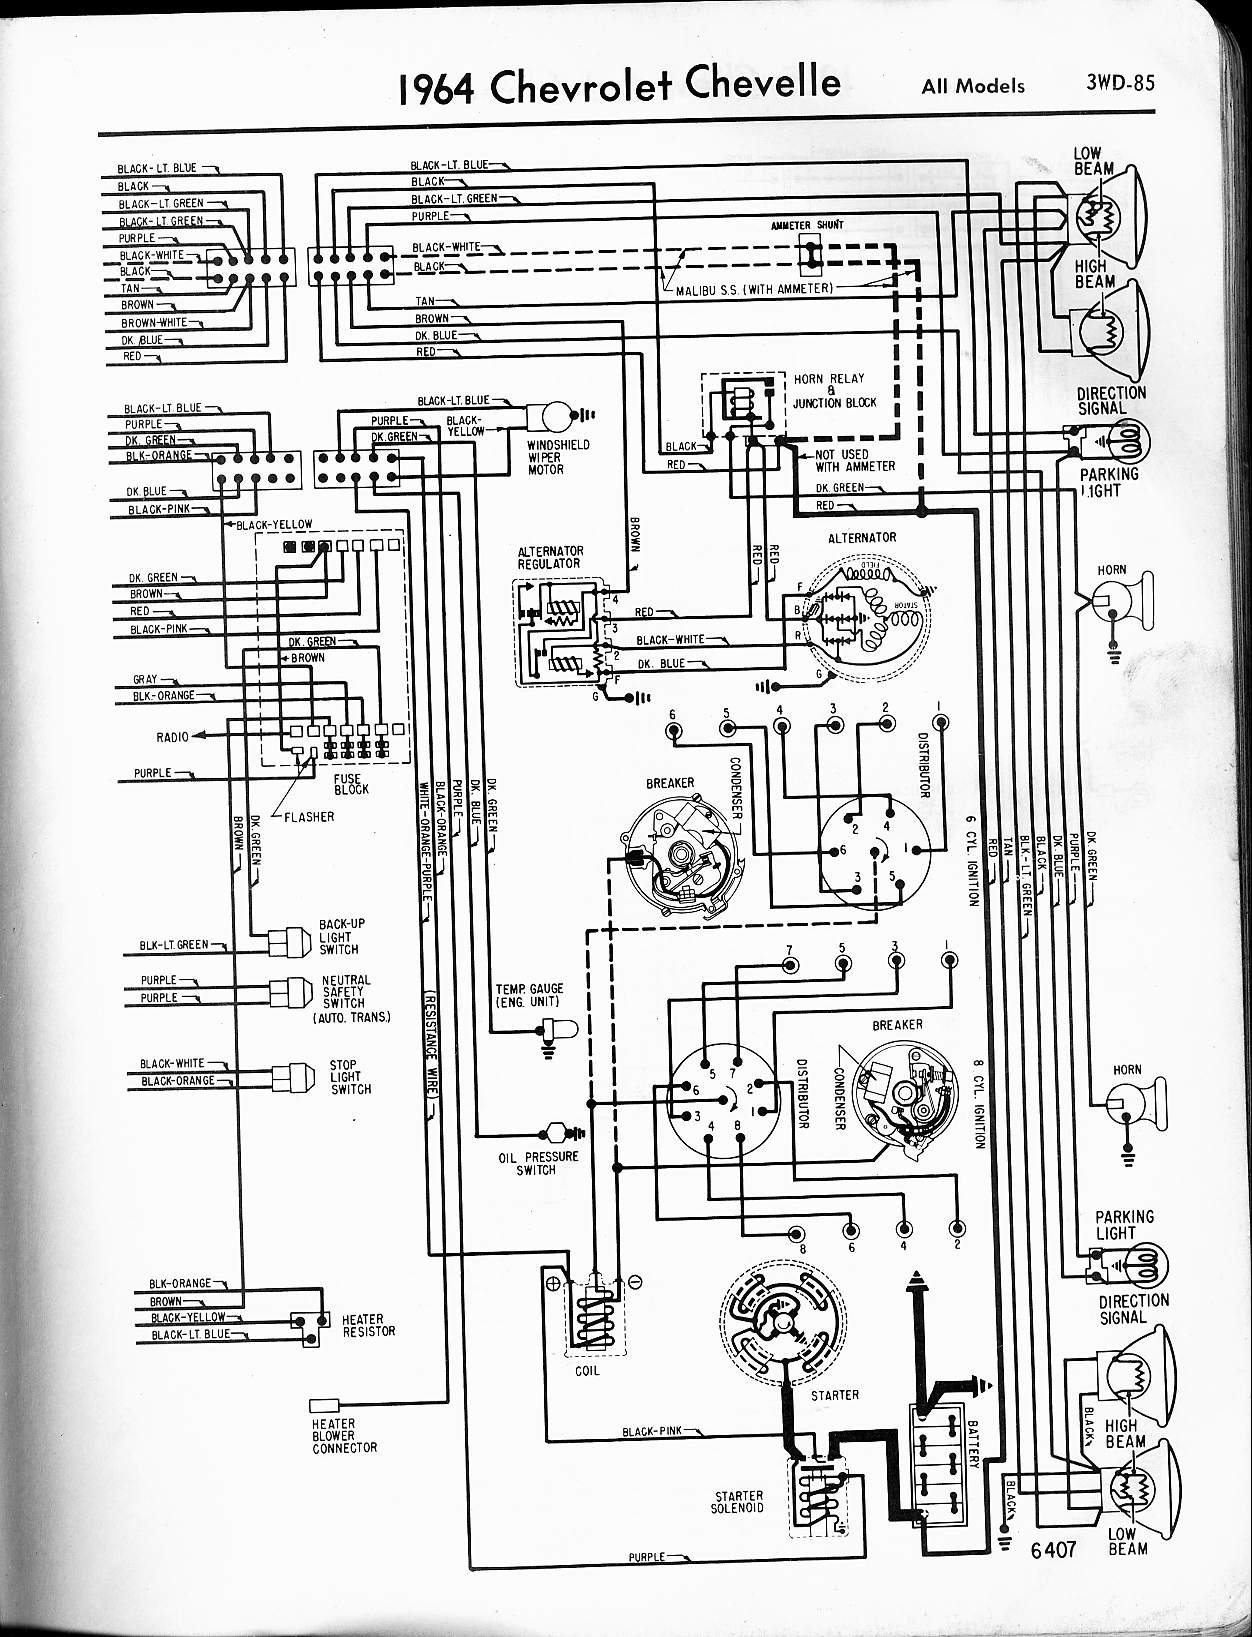 1966 gto wiring diagram download wiring diagram rh cc04 year of flora be